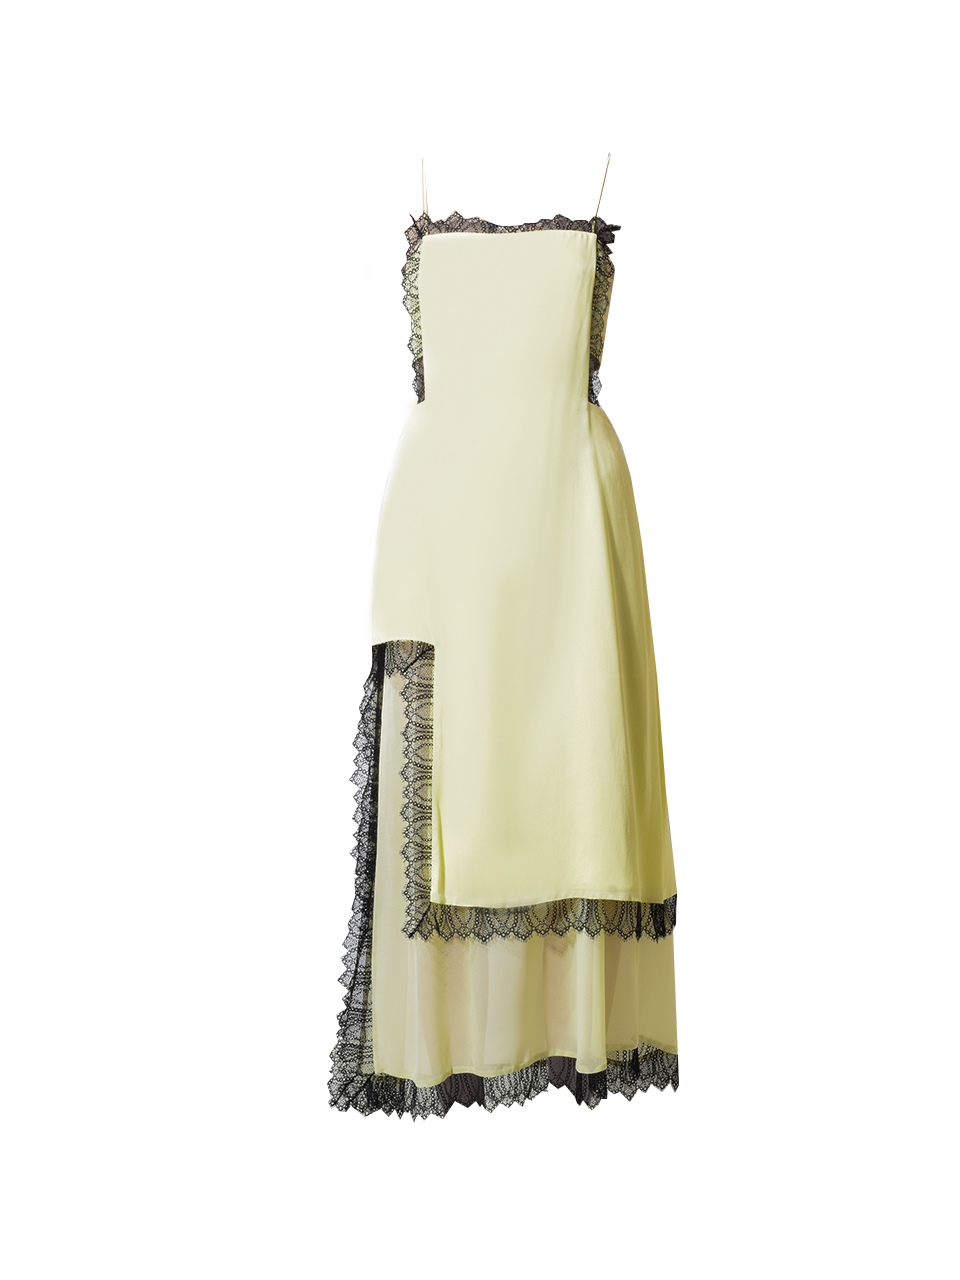 3.1 Phillip Lim Square Cutout Lace Slit Dress in Lemon